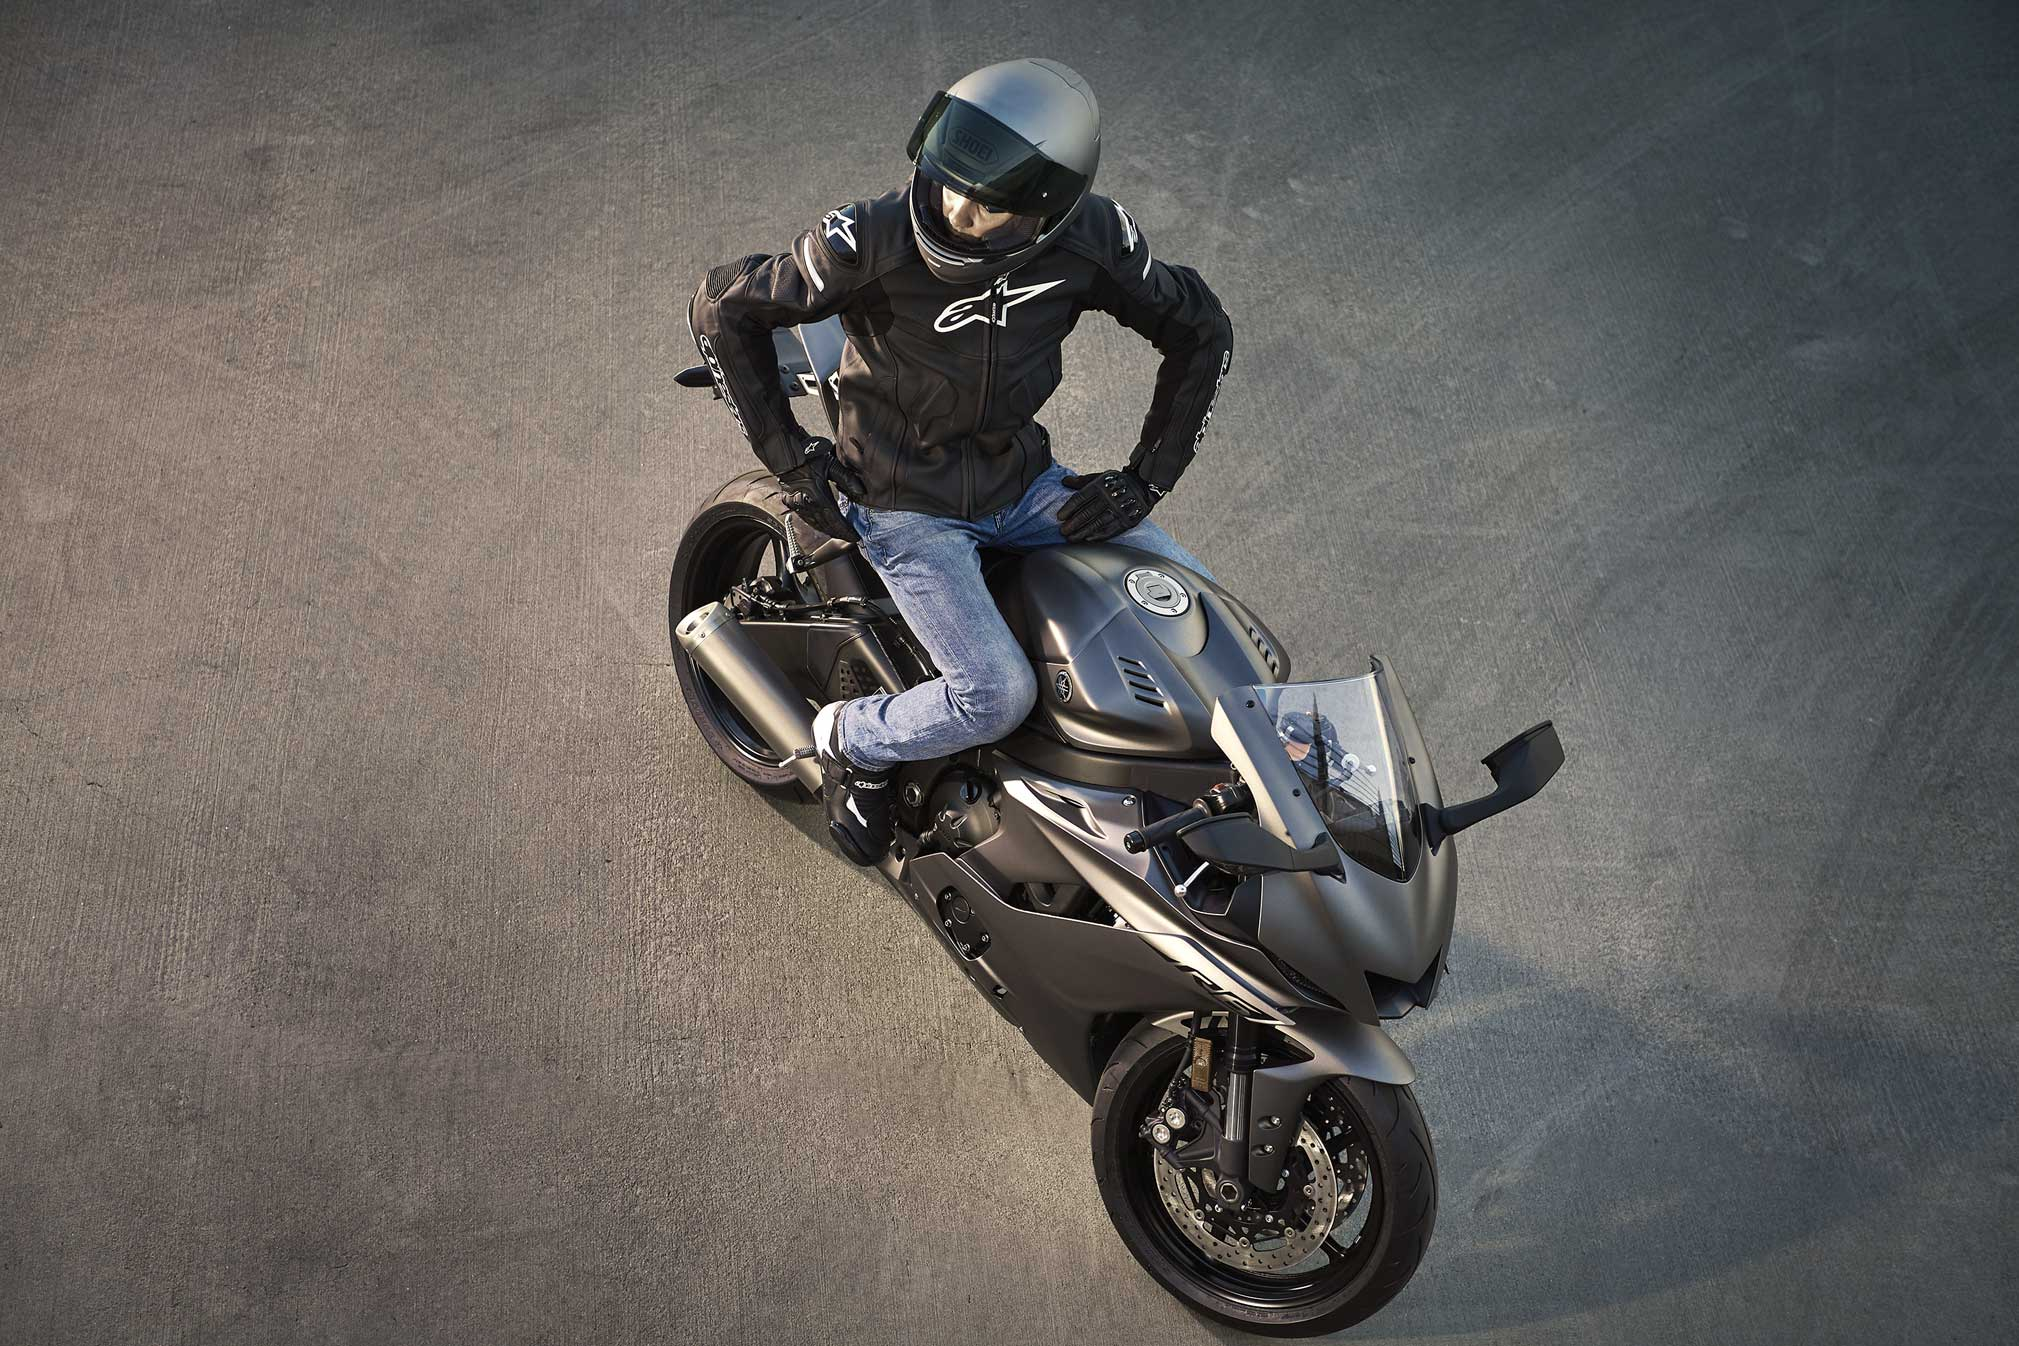 2019 yamaha yzf-r6 guide • total motorcycle